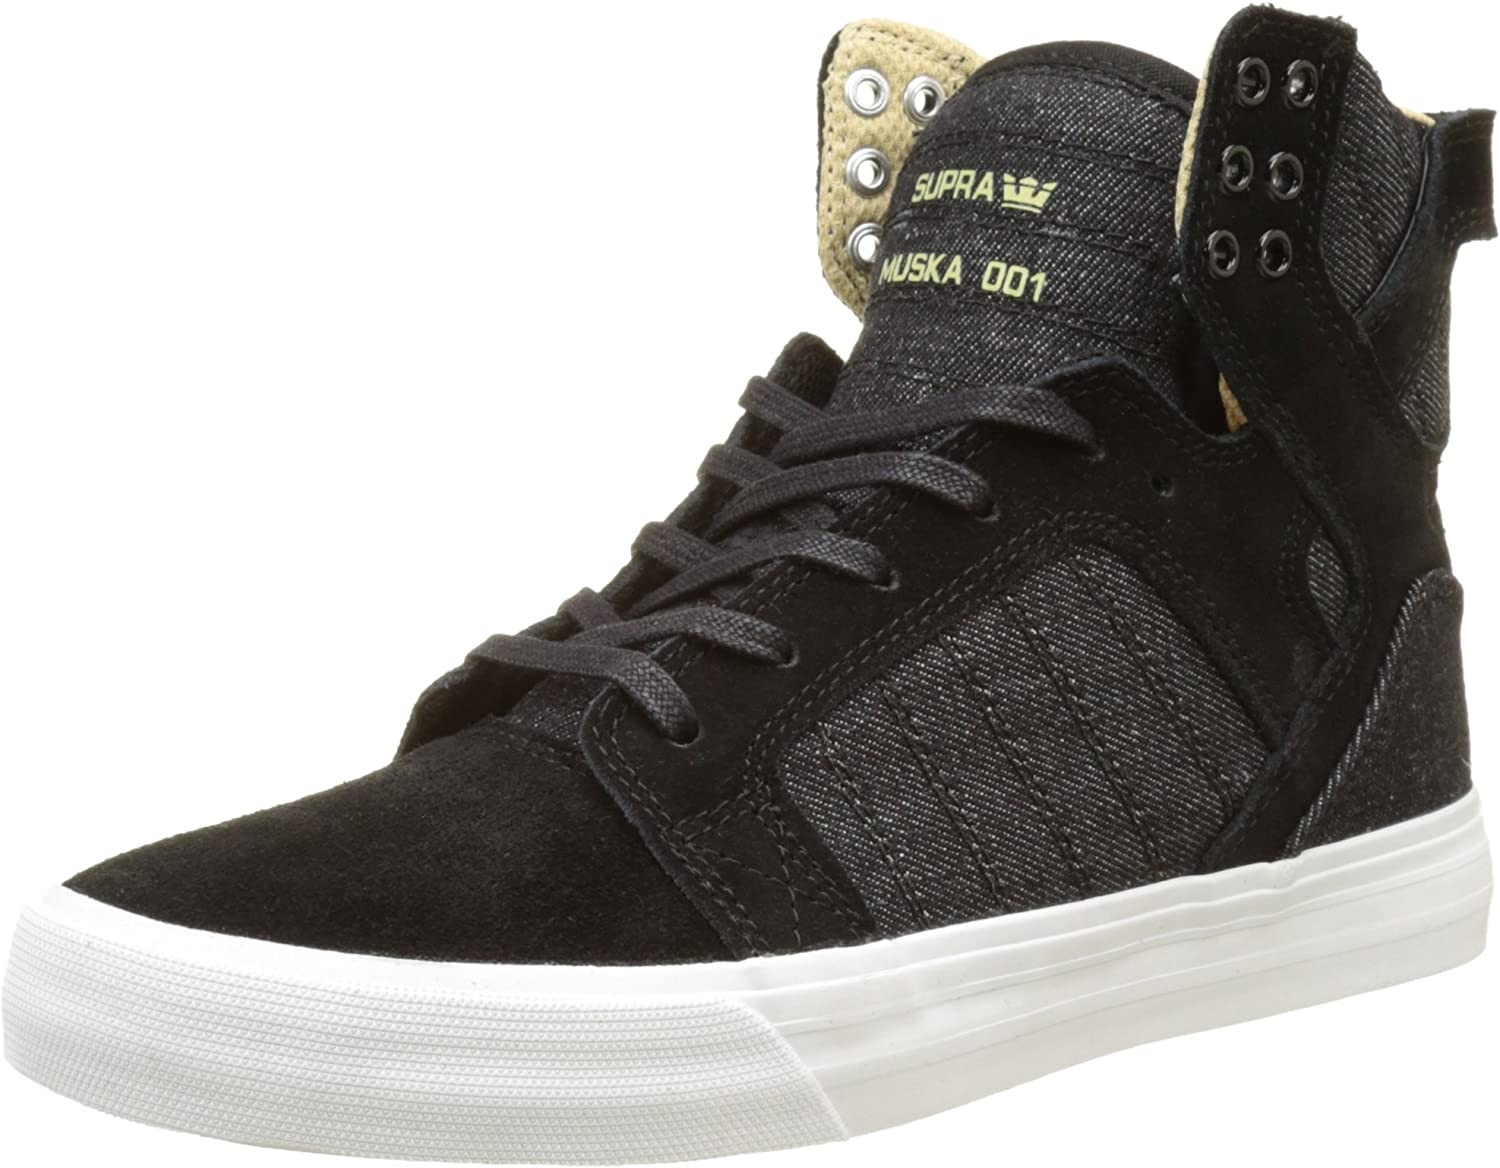 Supra Skytop Classic, Unisex Adults' High-Top Sneakers